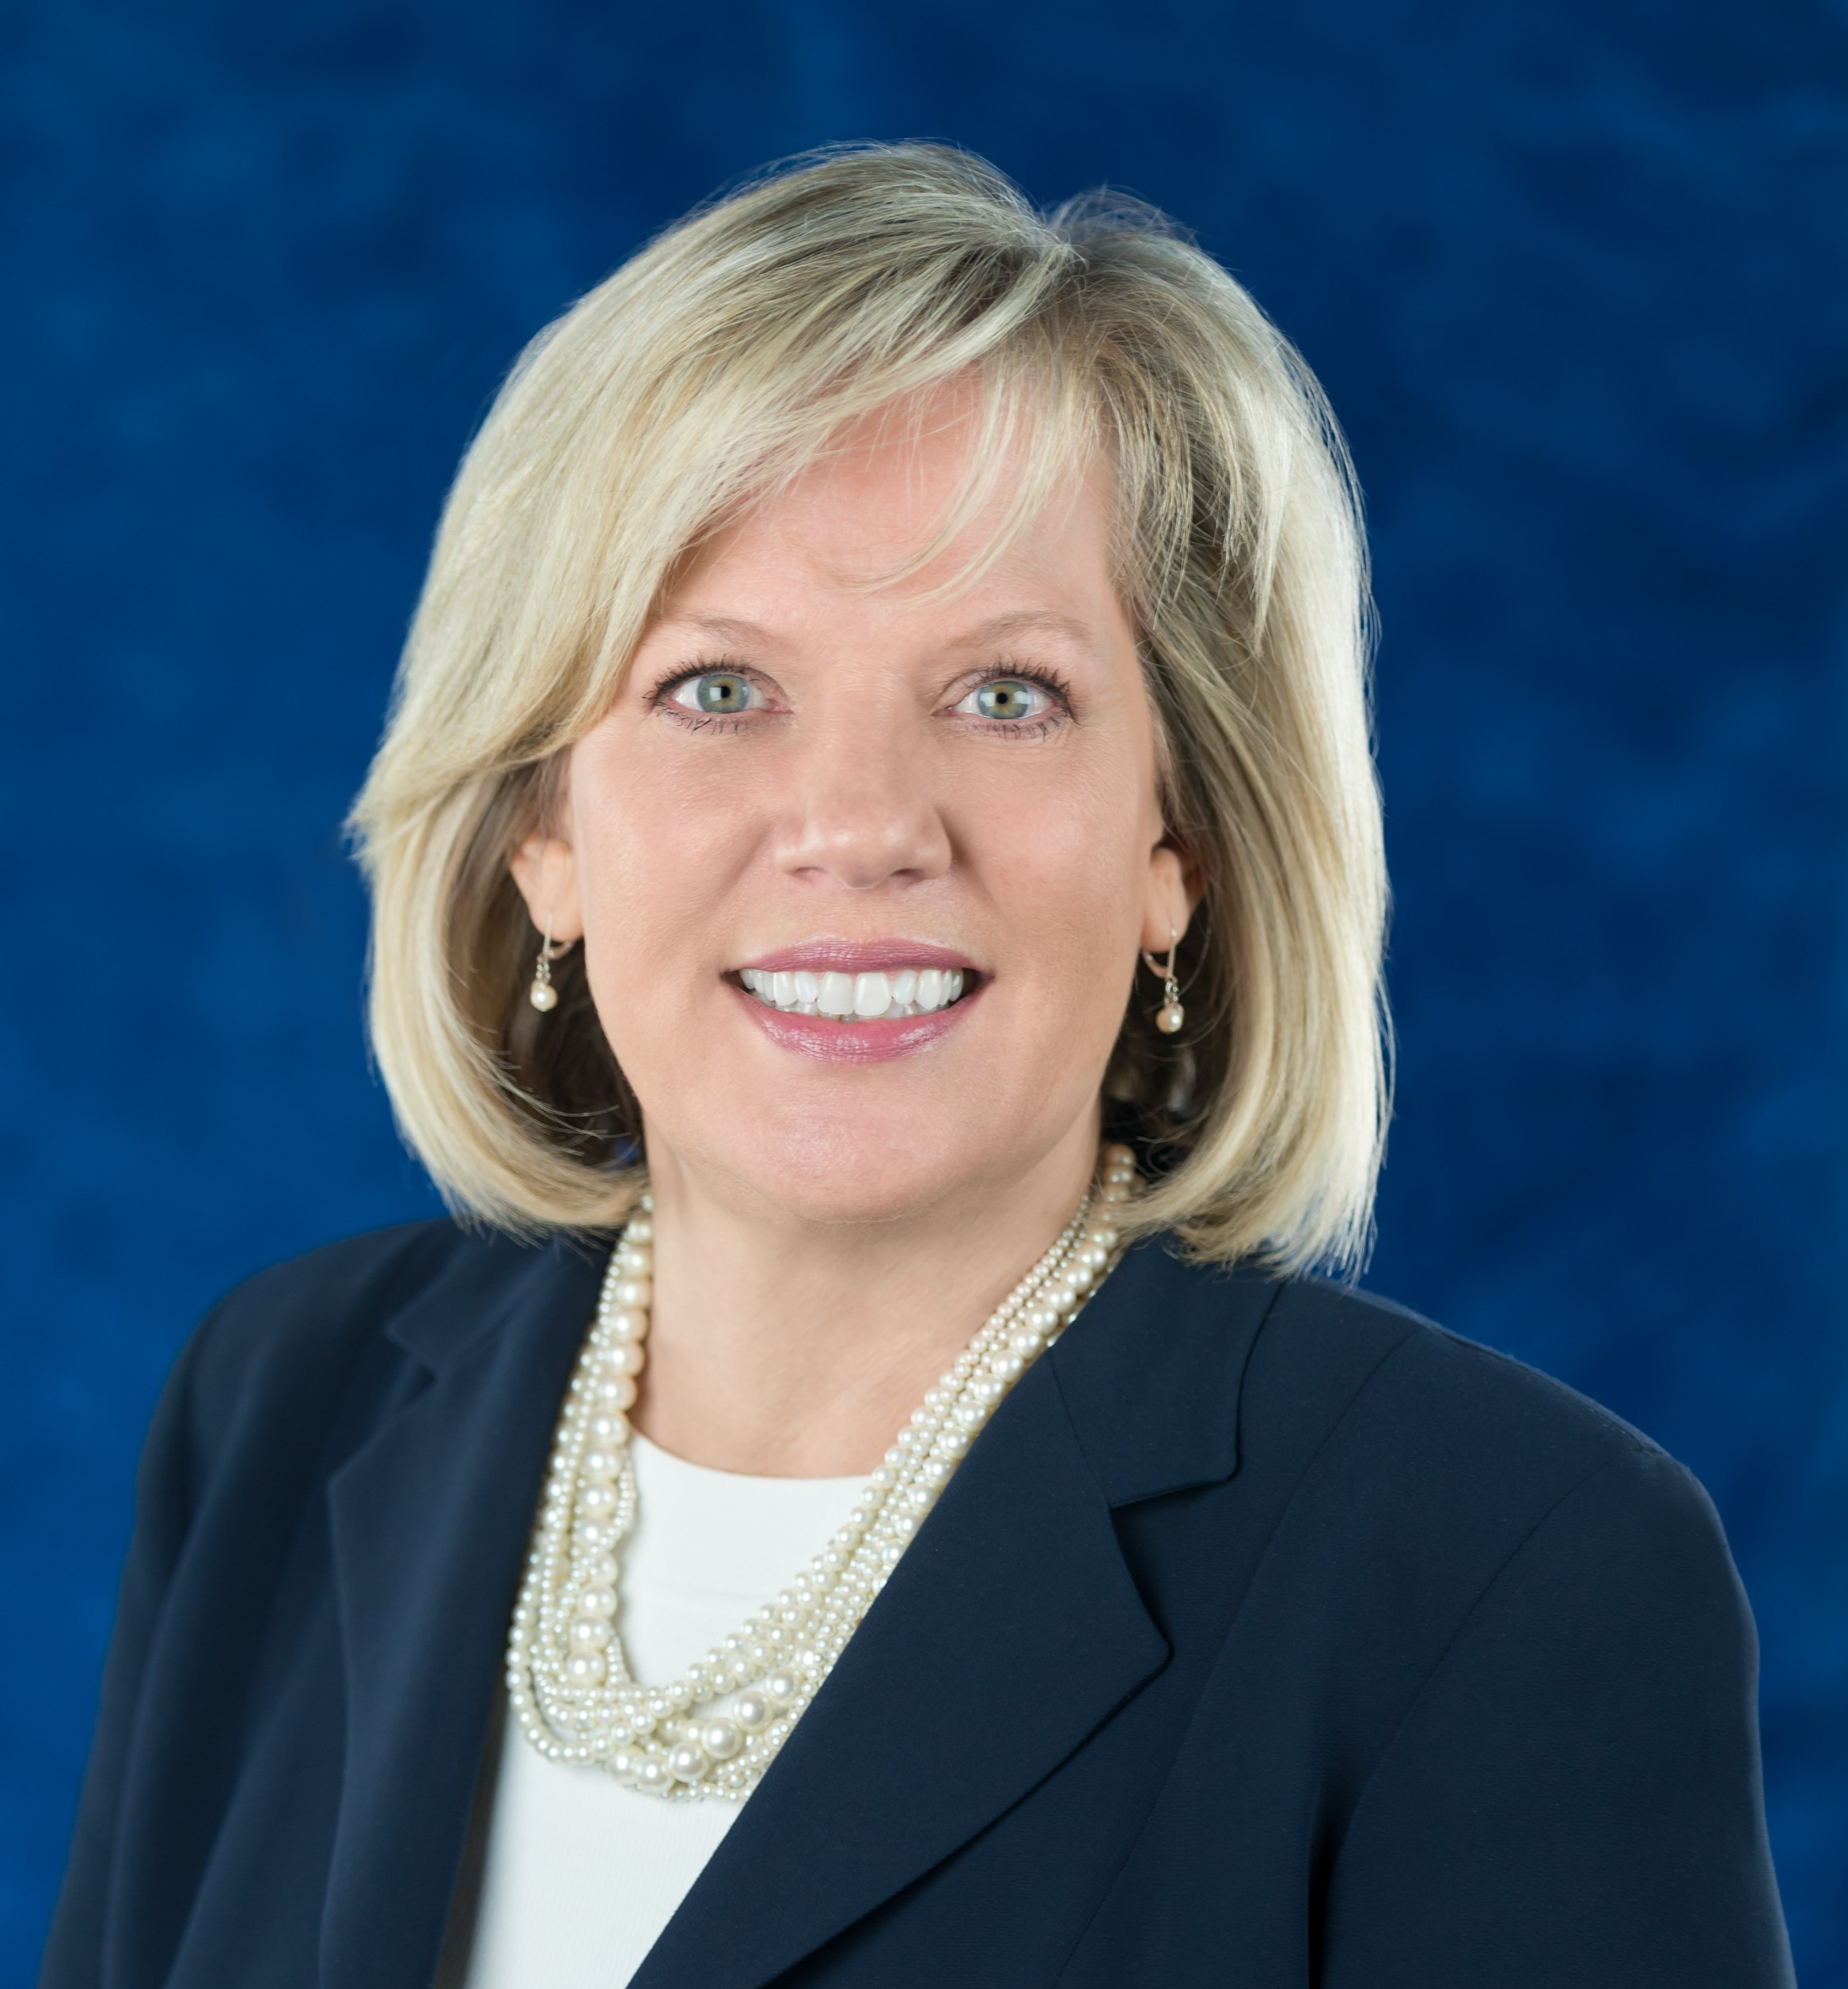 Pamela E. Bobst of Rocky River, Ohio, has been appointed to the Kent State University Board of Trustees.